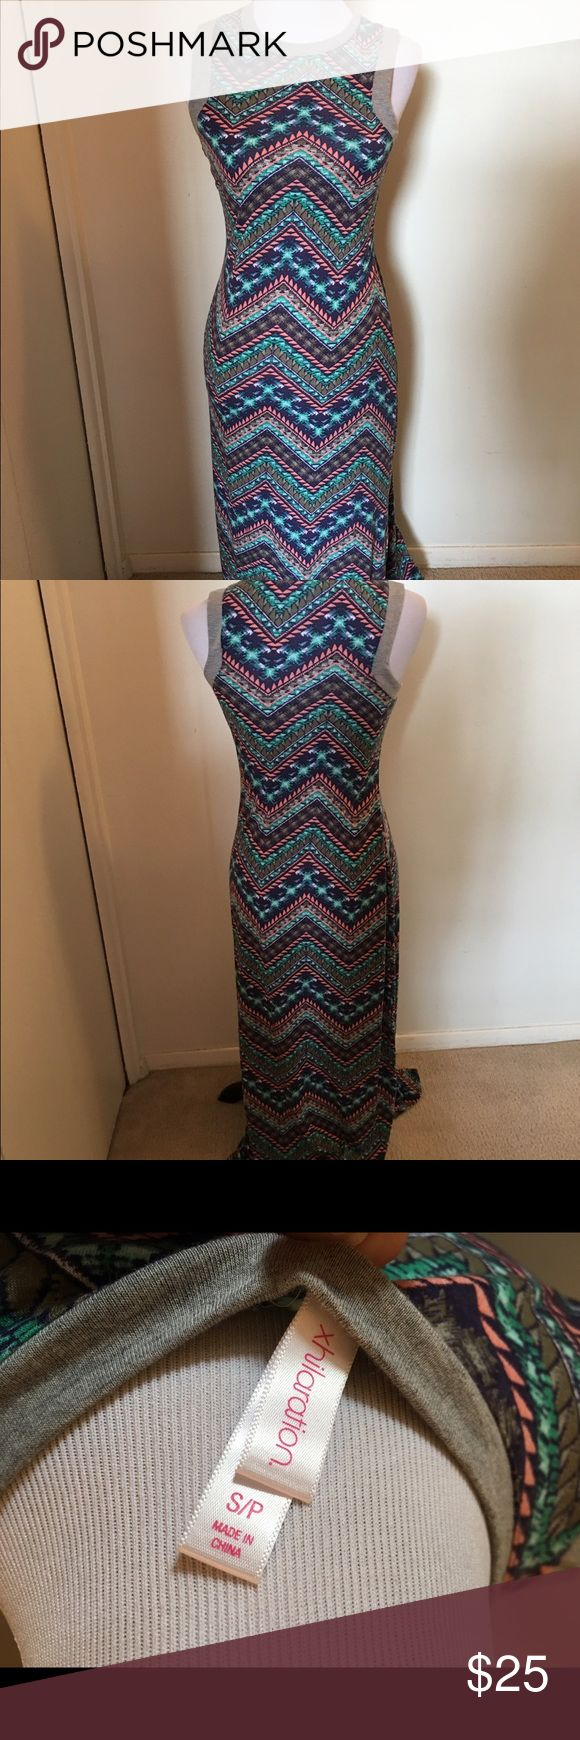 Aztec Maxi Dress Beautiful long Aztec dress Xhilaration Dresses Maxi